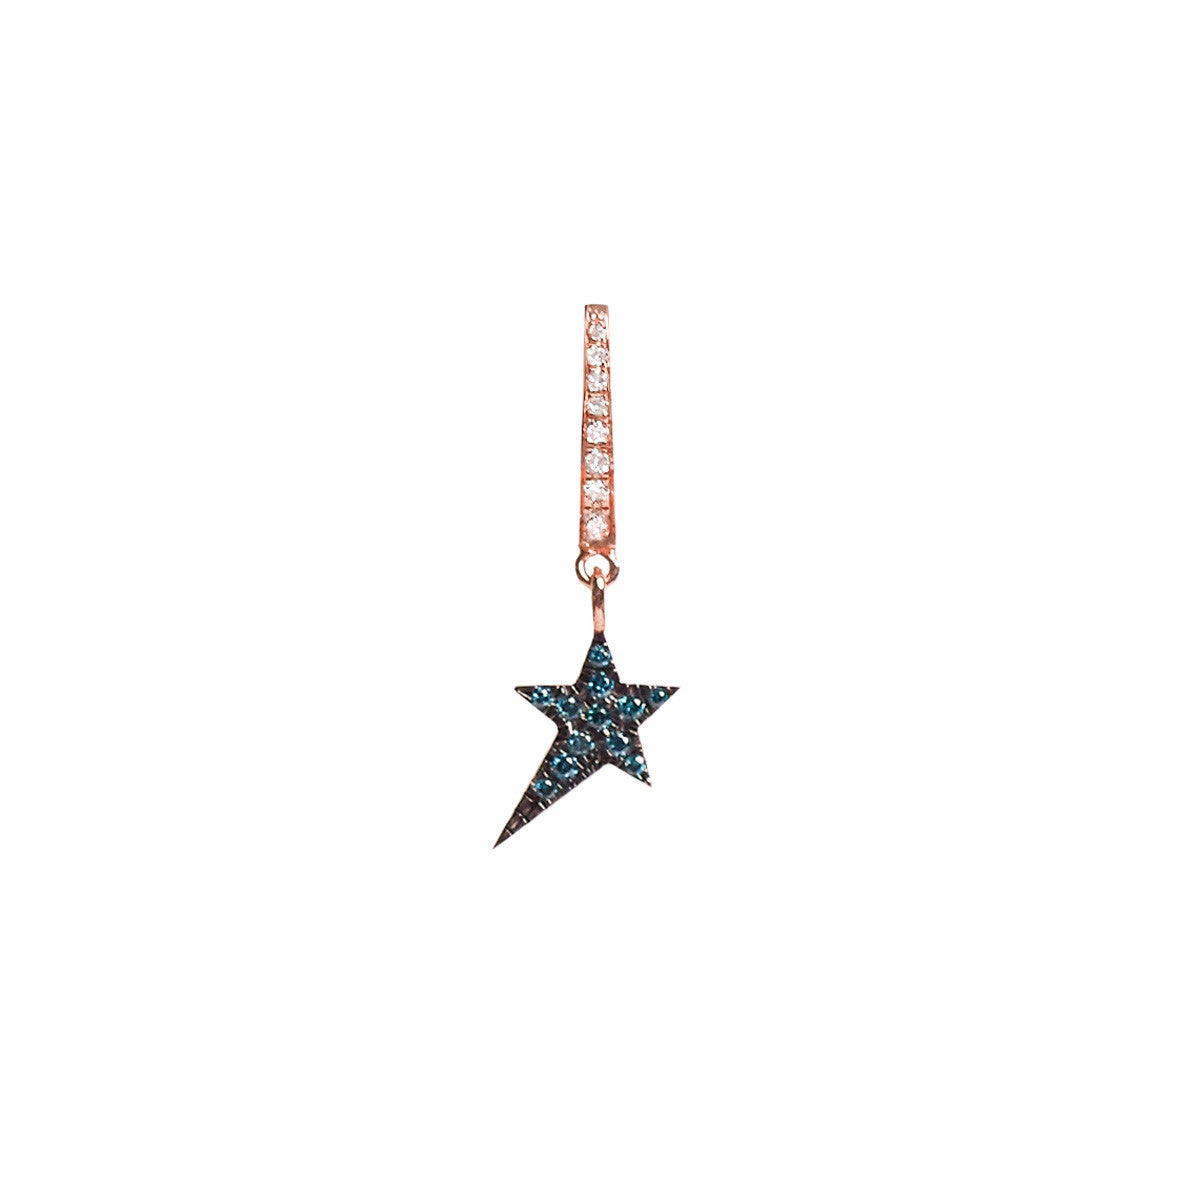 Diane Kordas Jewellery Cosmos Blue Star Charm Earring 18kt gold